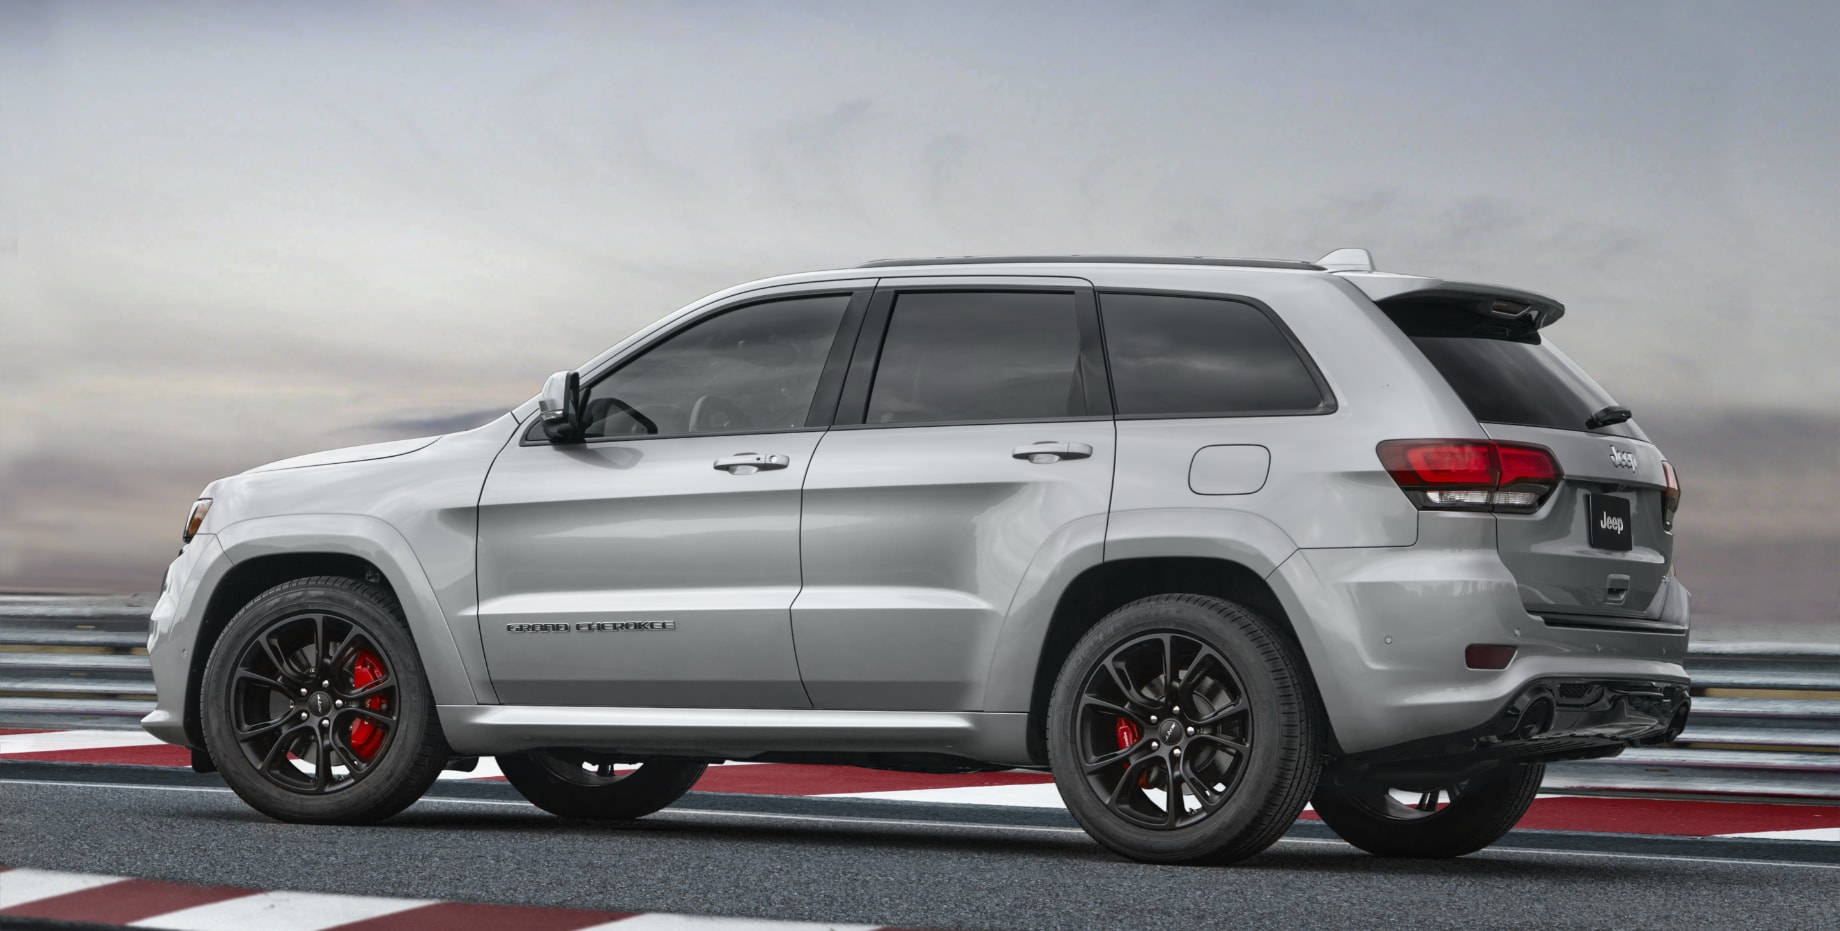 Shottenkirk Mt Pleasant >> Jeep Grand Cherokee for sale in Mt. Pleasant, IA | Shottenkirk